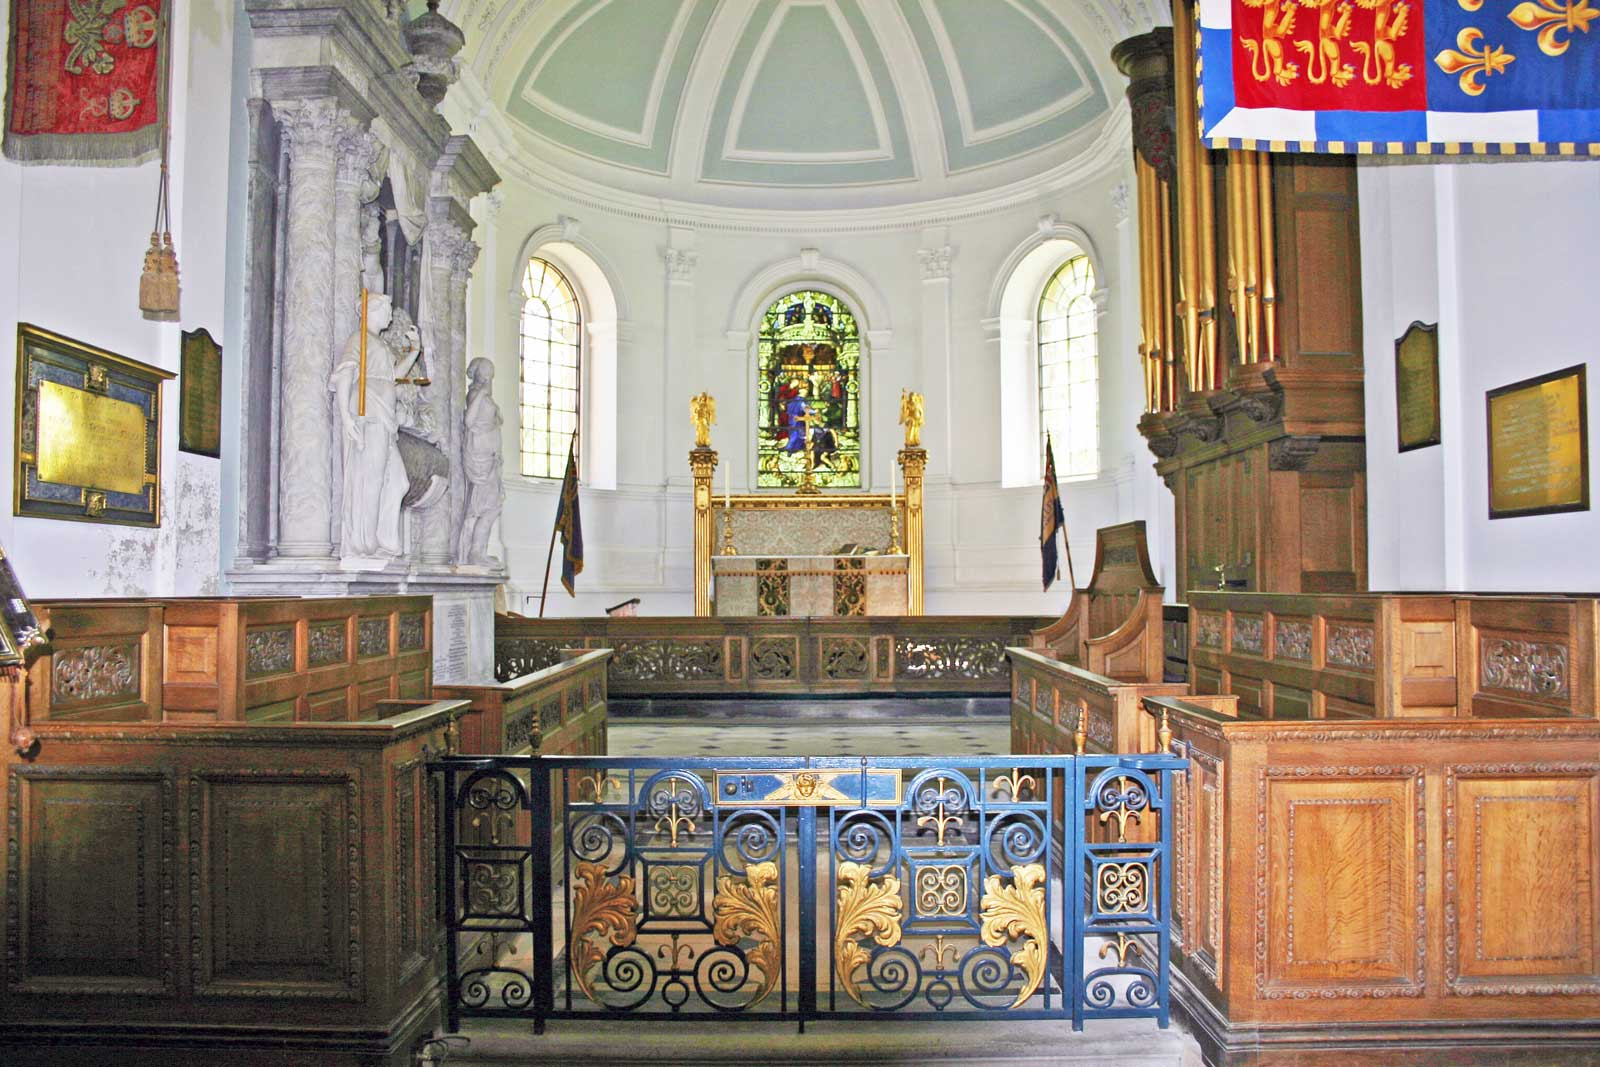 The Chancel at Great Badminton